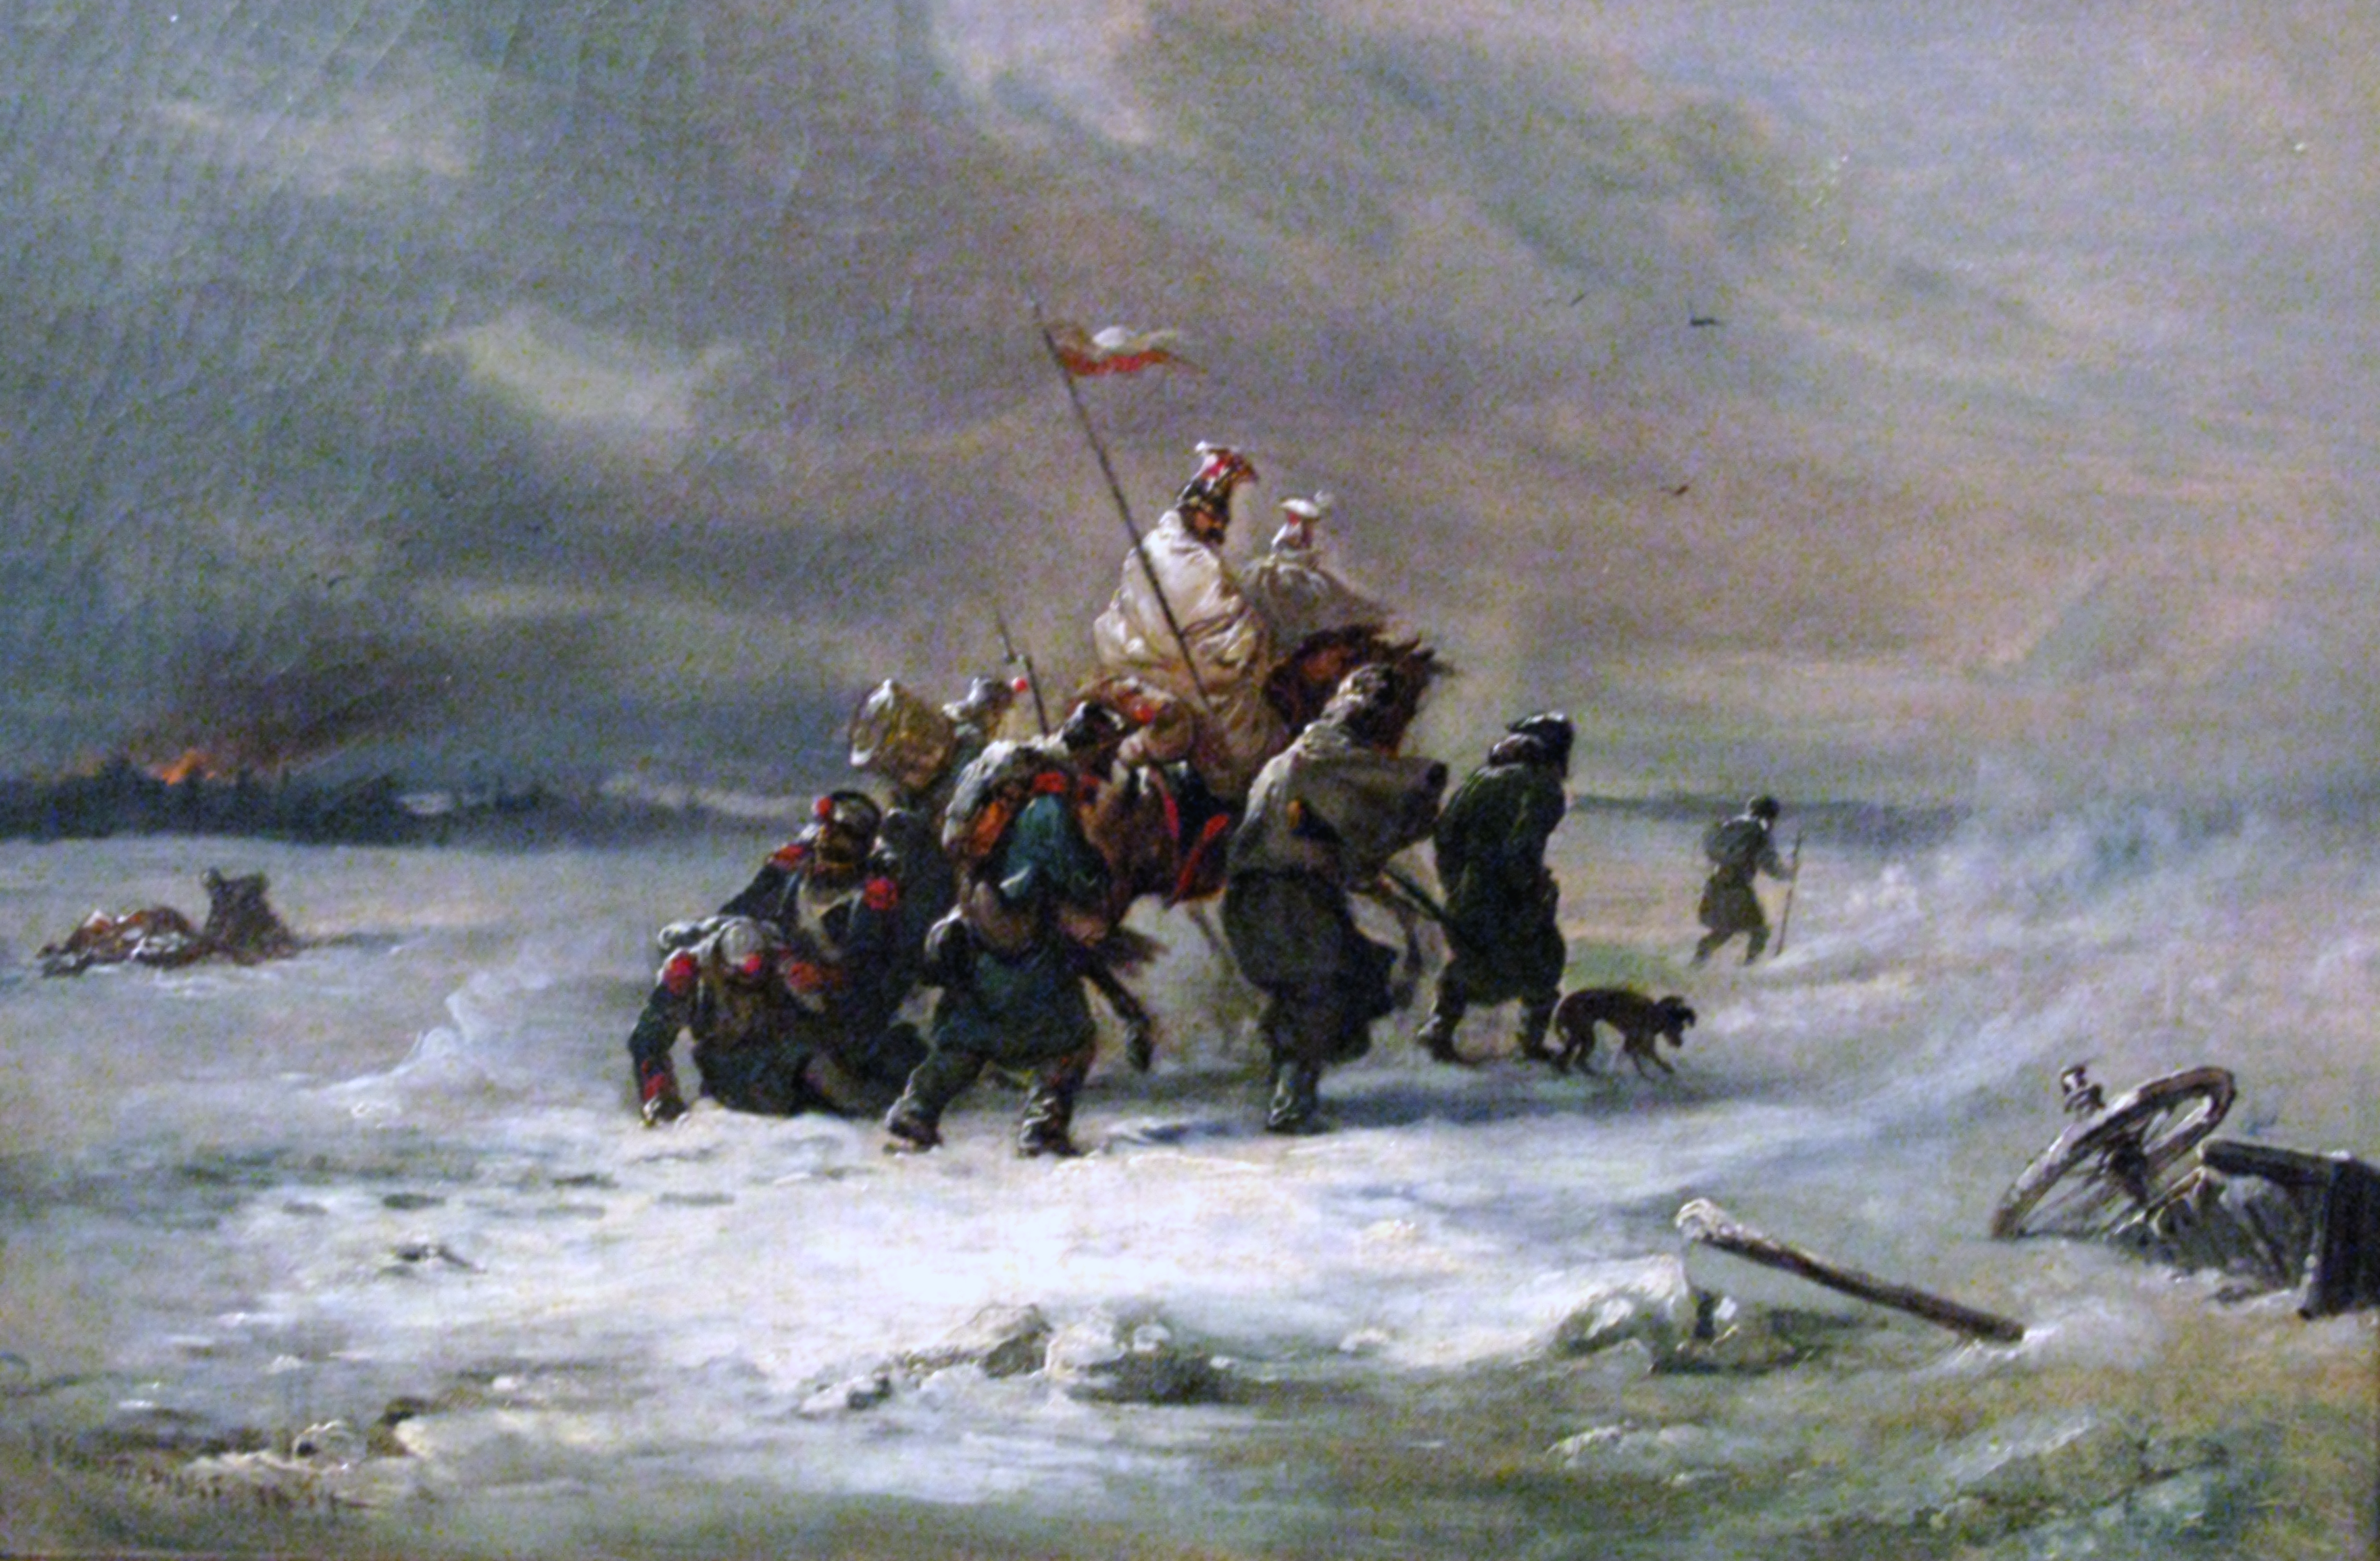 Napoleon's Lost Army: The Soldiers Who Fell